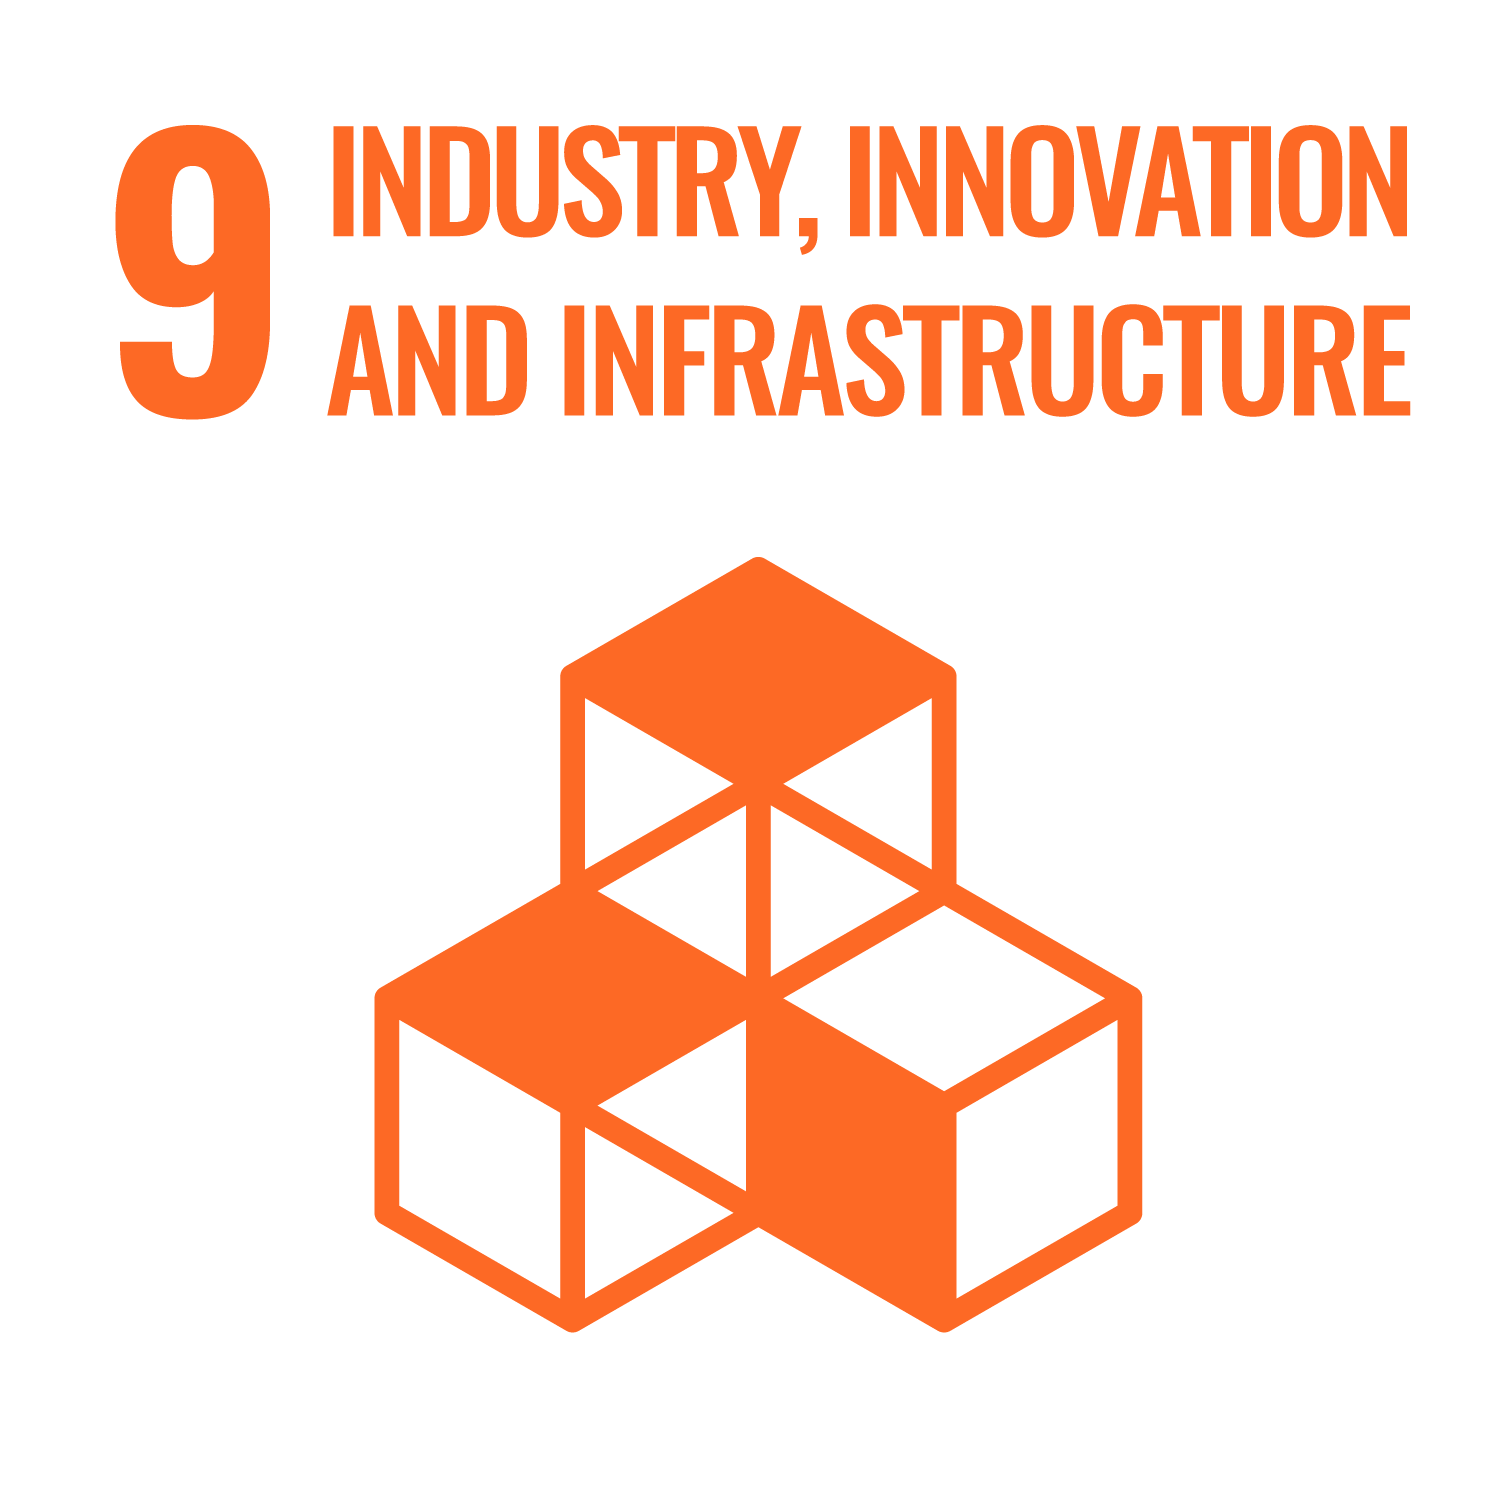 United Nations Sustainable Development Goals - Industry, Innovation and Infrastructure